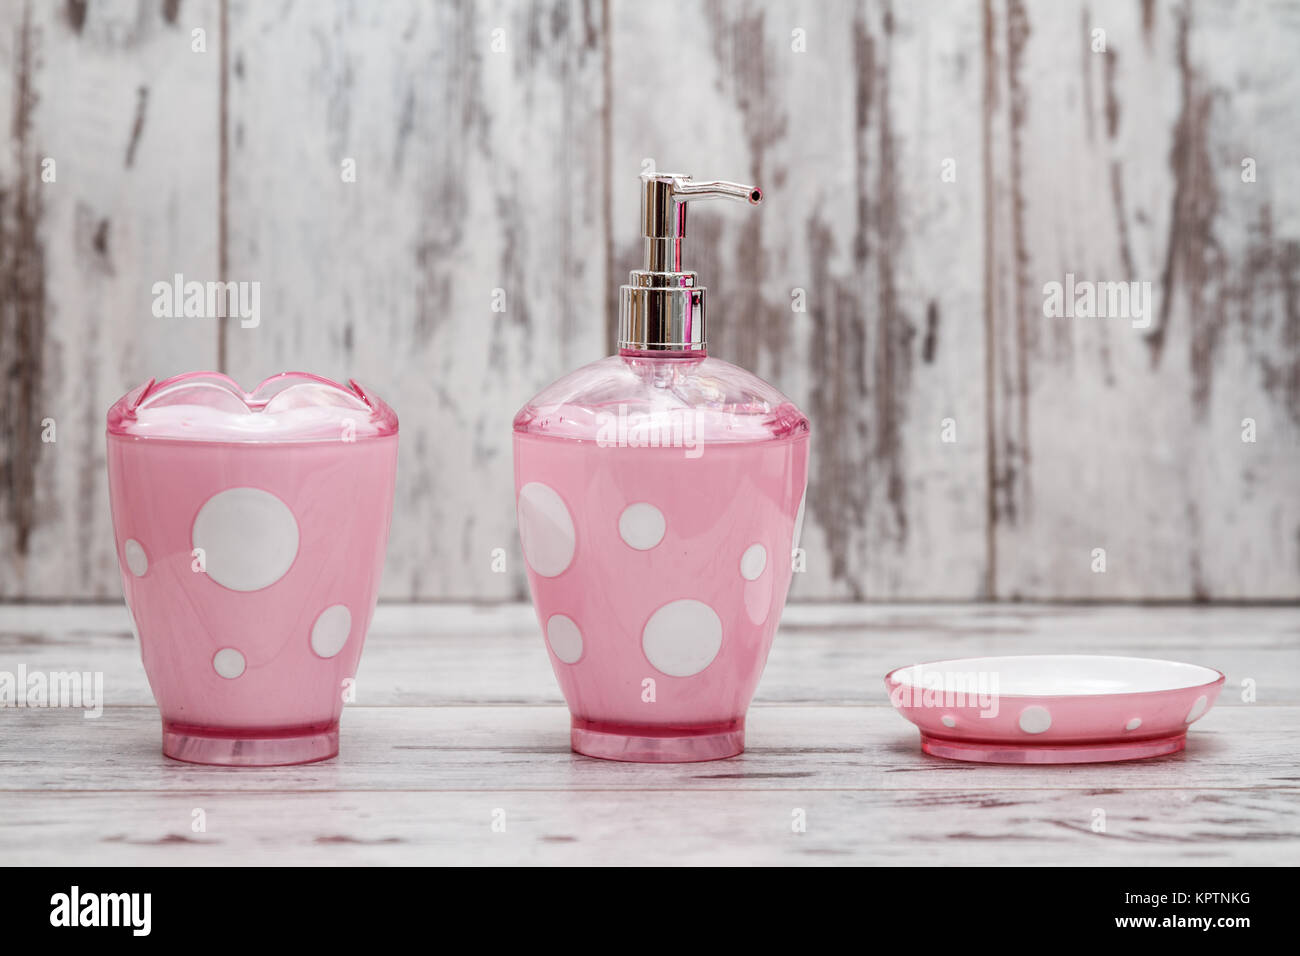 Set Of Cute Pink Bathroom Accessories On White Wooden Background